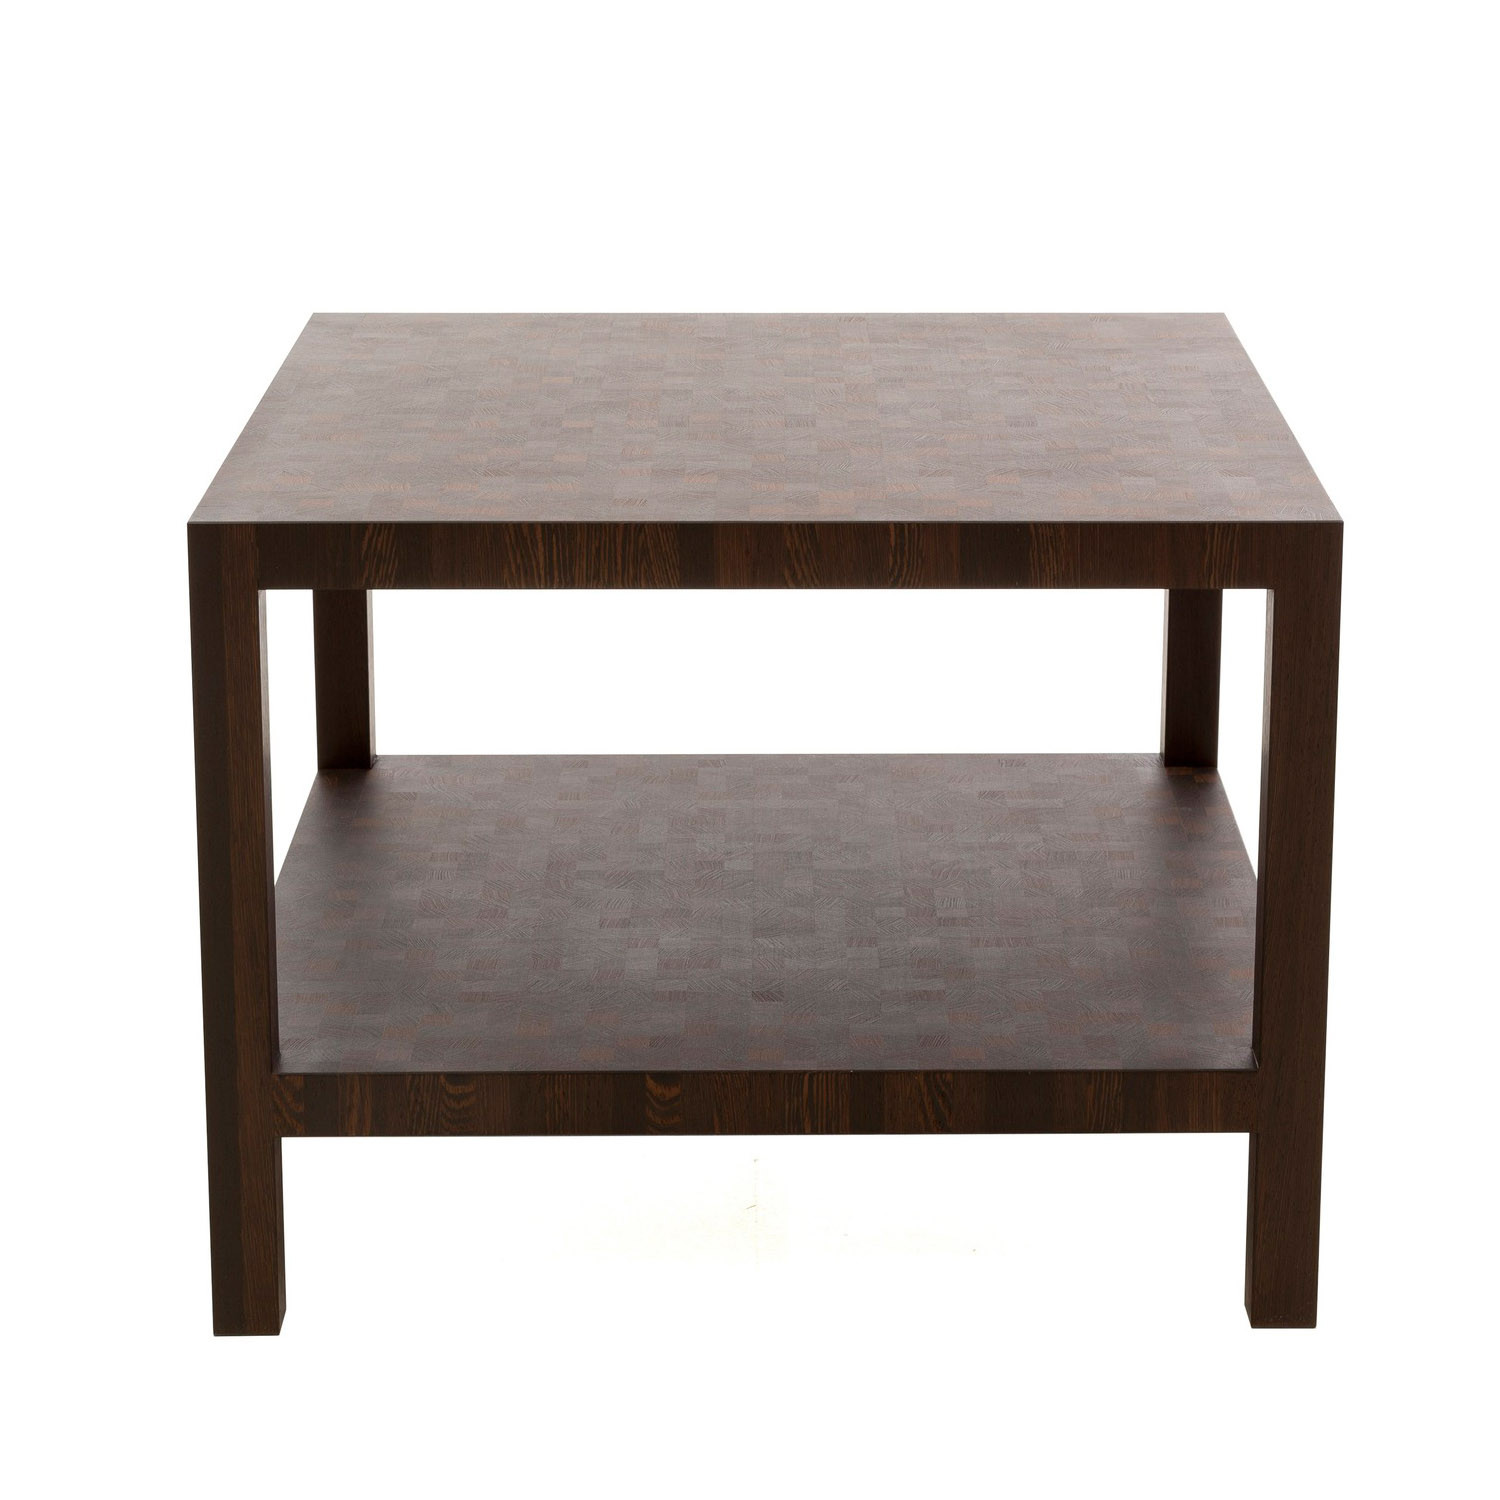 Table le Carre from Jules Wabbes